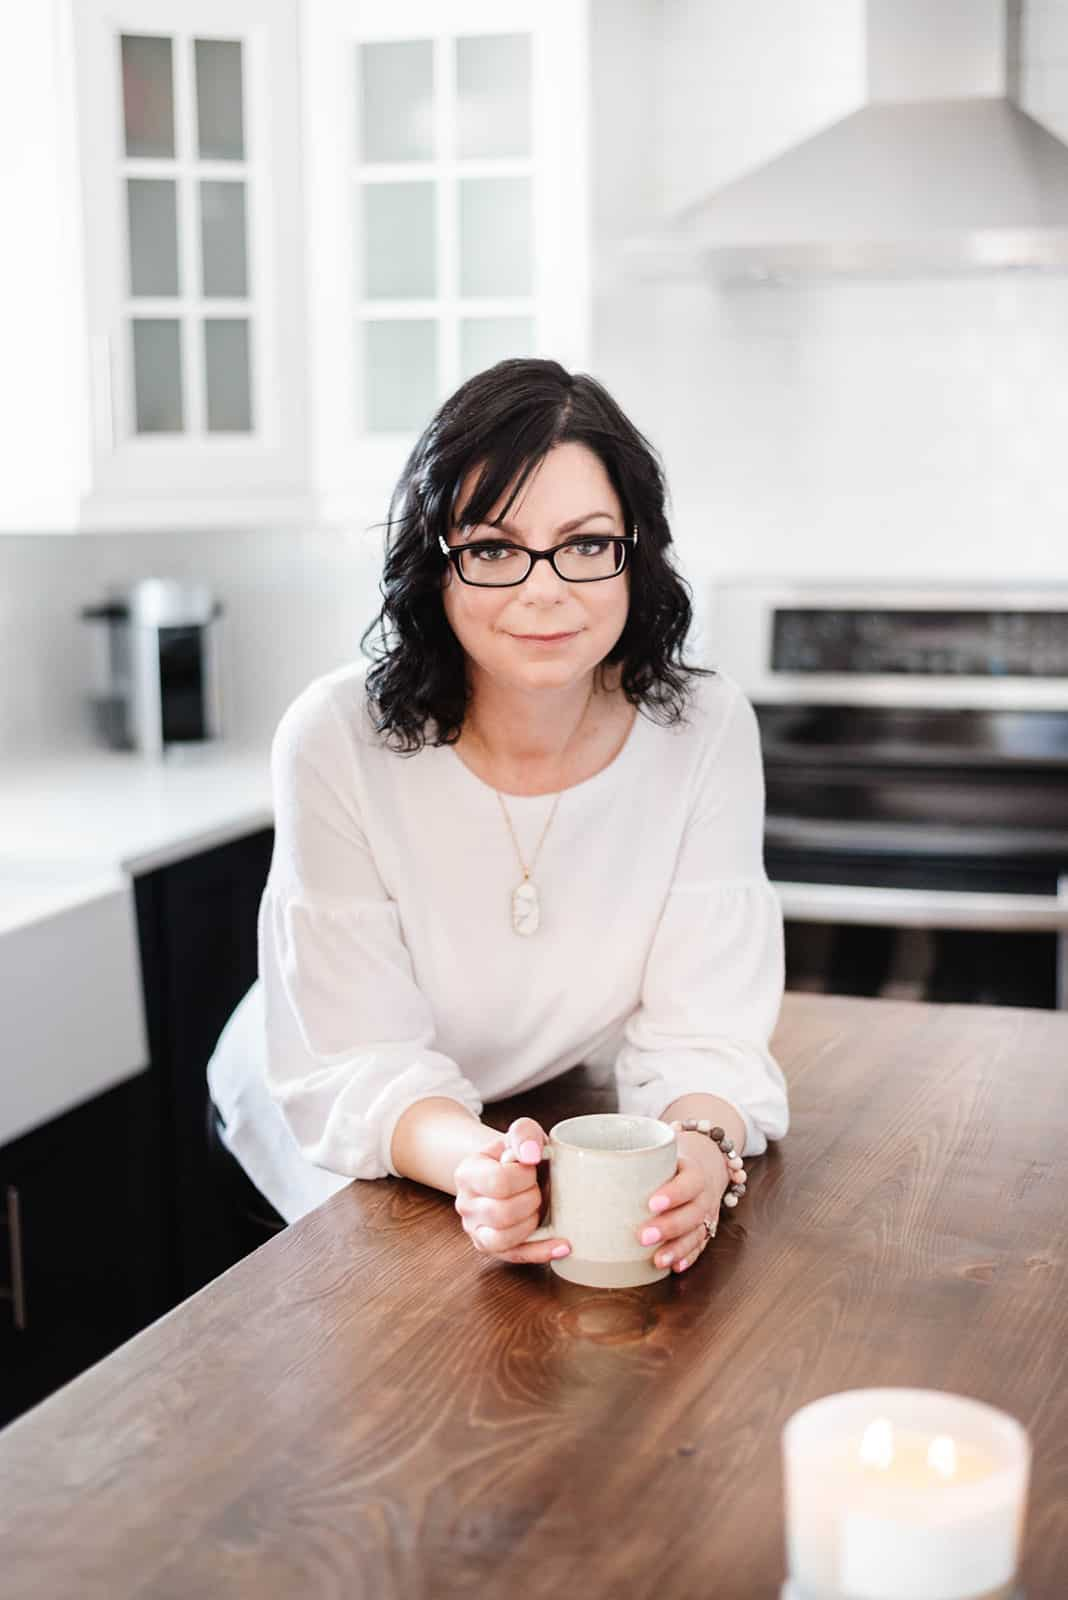 Food blogger Stacie Vaughan holding a coffee cup on a kitchen counter.